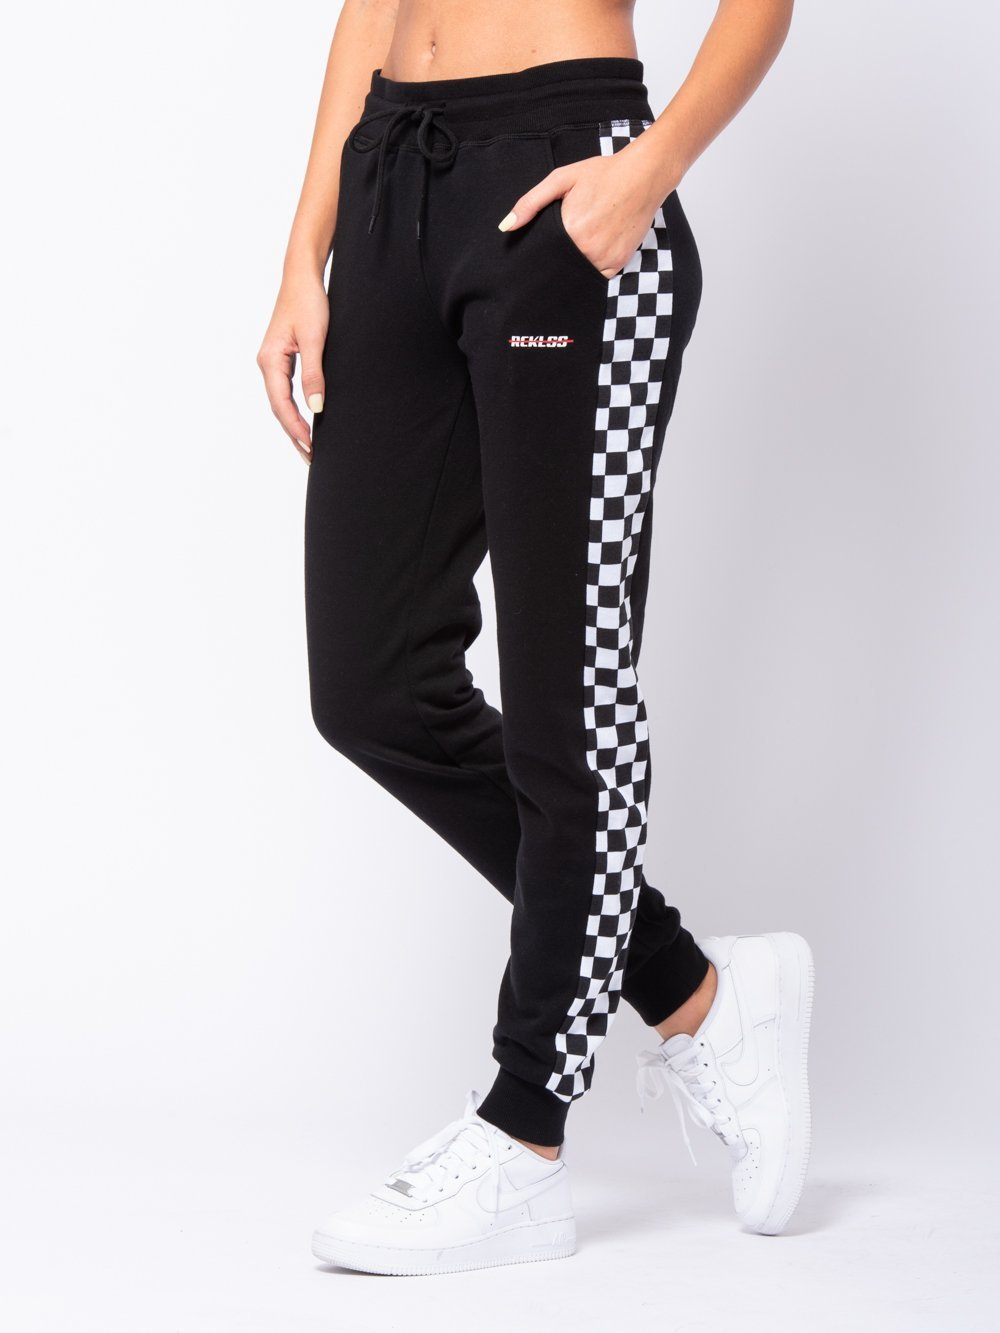 Reckless Girls Womens - Bottoms - Pants Pippa Sweatpants - Black